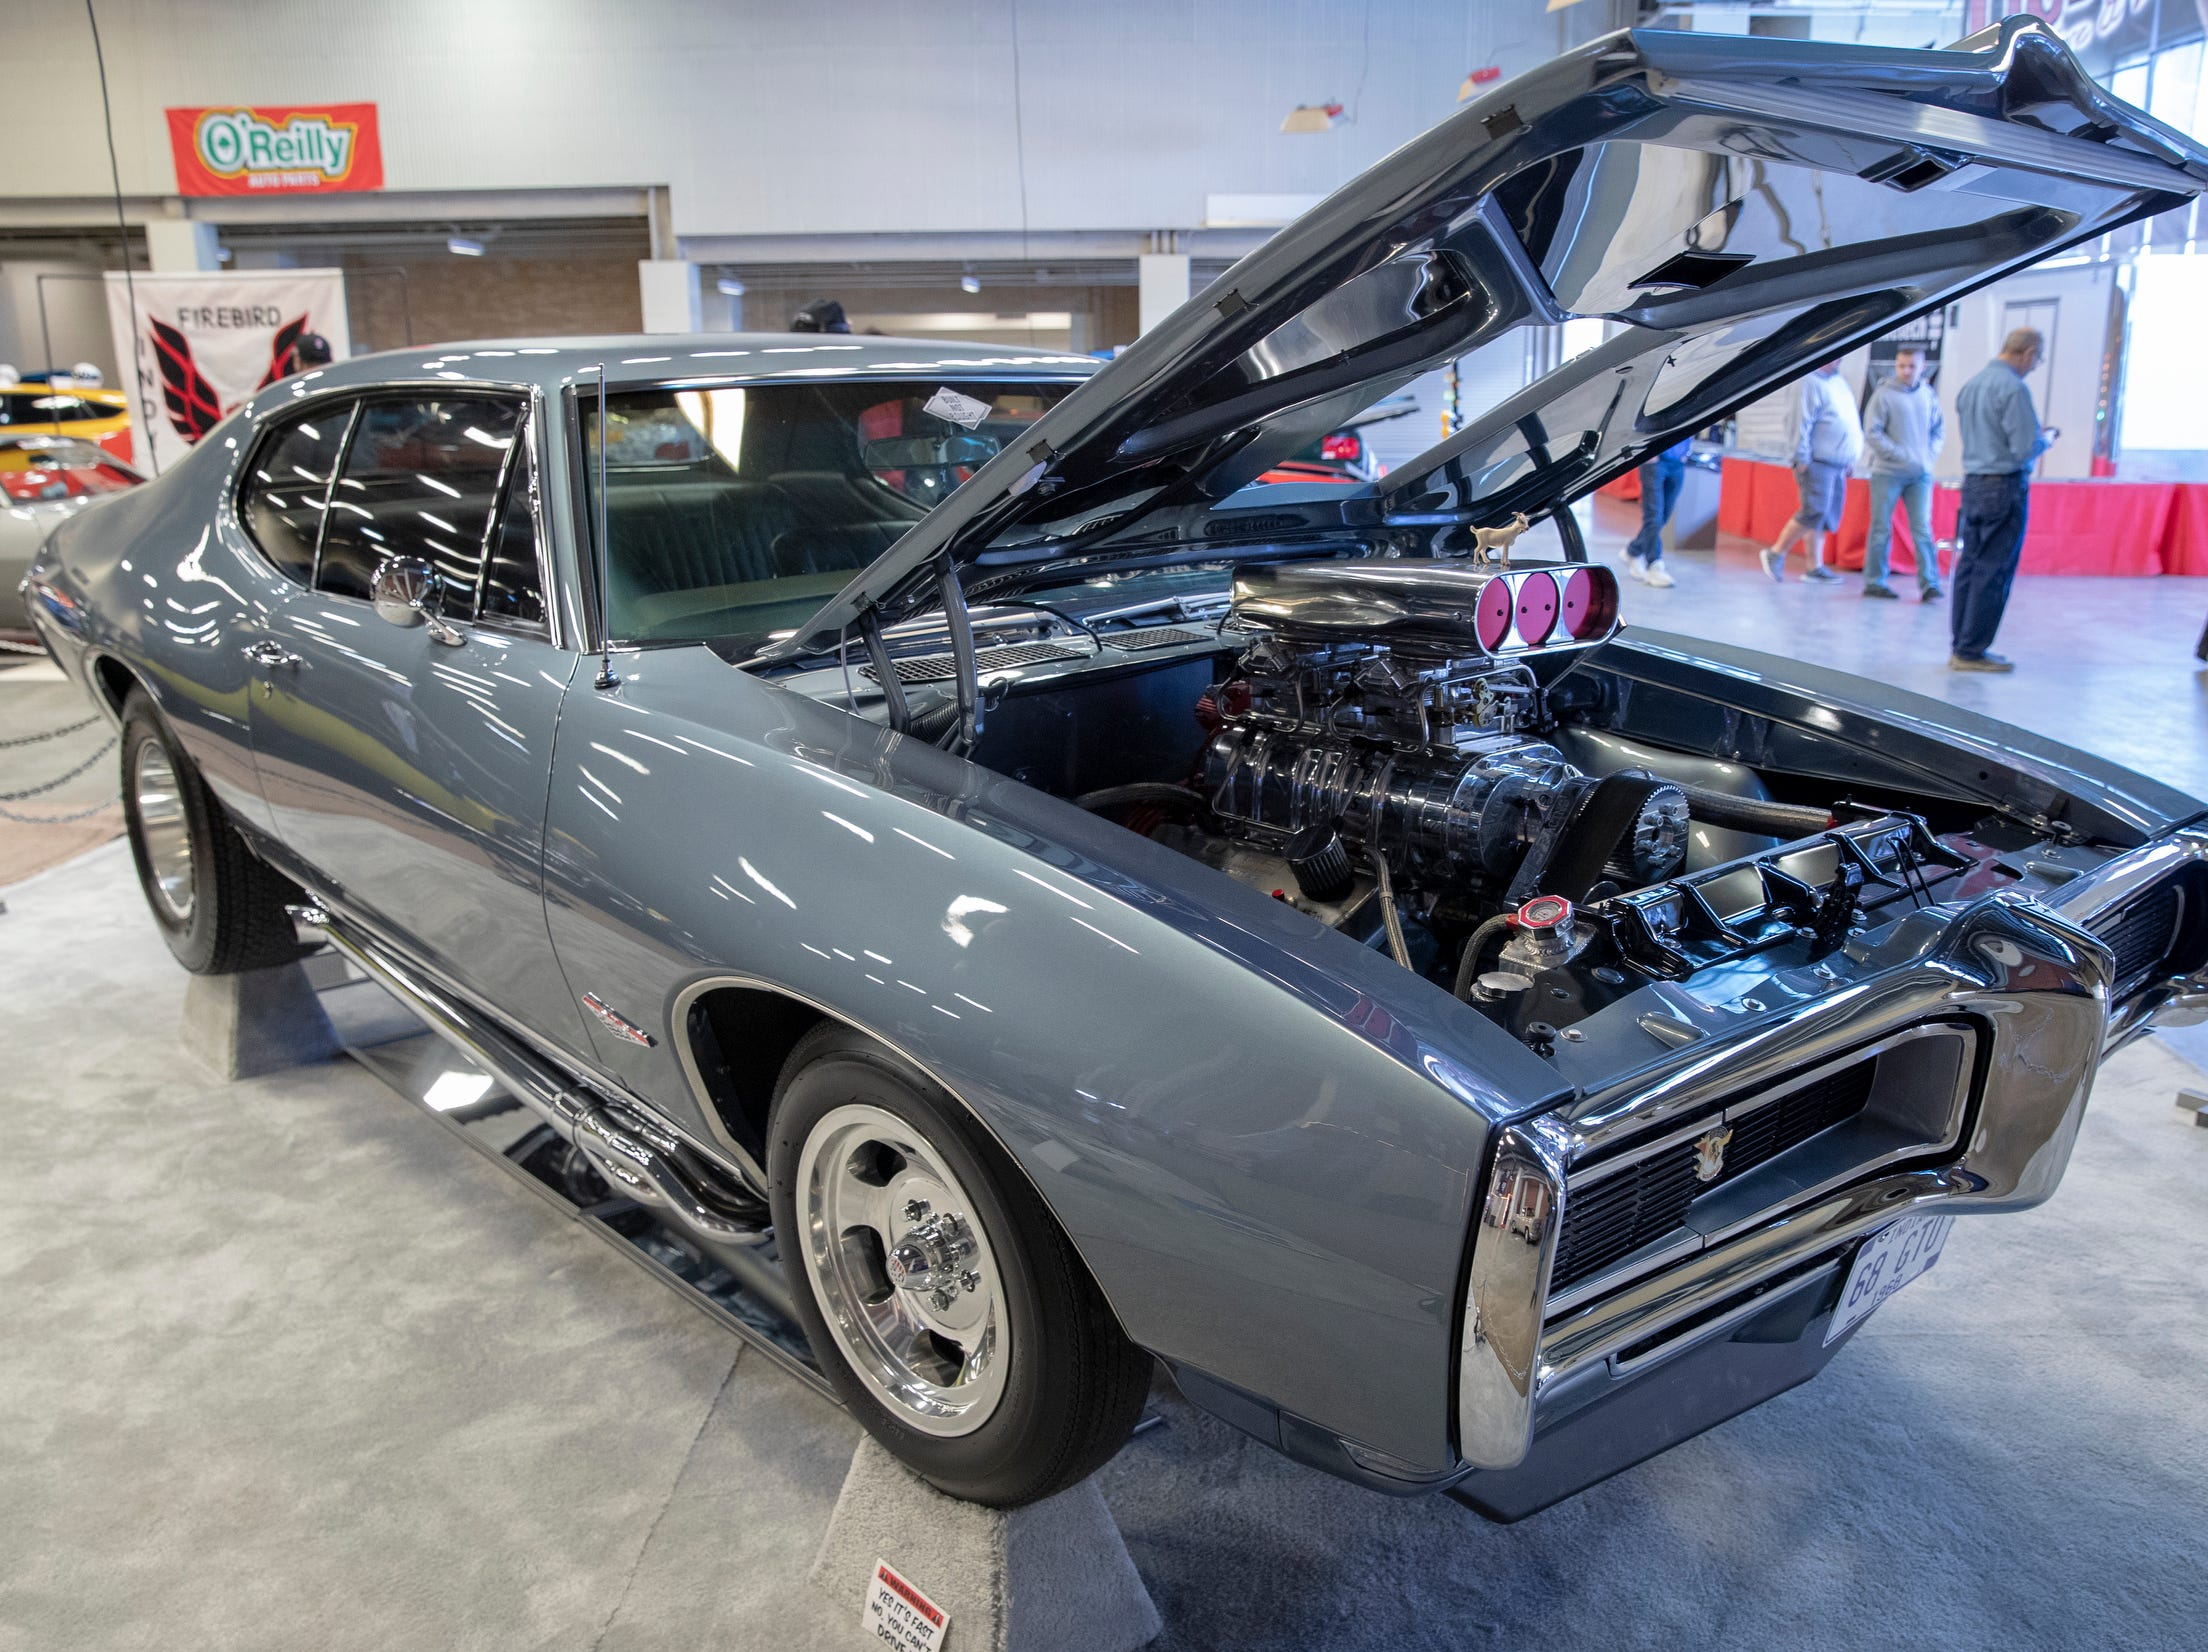 A 1968 Pontiac GTO, at World of Wheels at the Indiana State Fairgrounds, Indianapolis, Friday, Feb. 8, 2019. The event runs through the weekend and features four big rooms of stock and heavily customized cars.